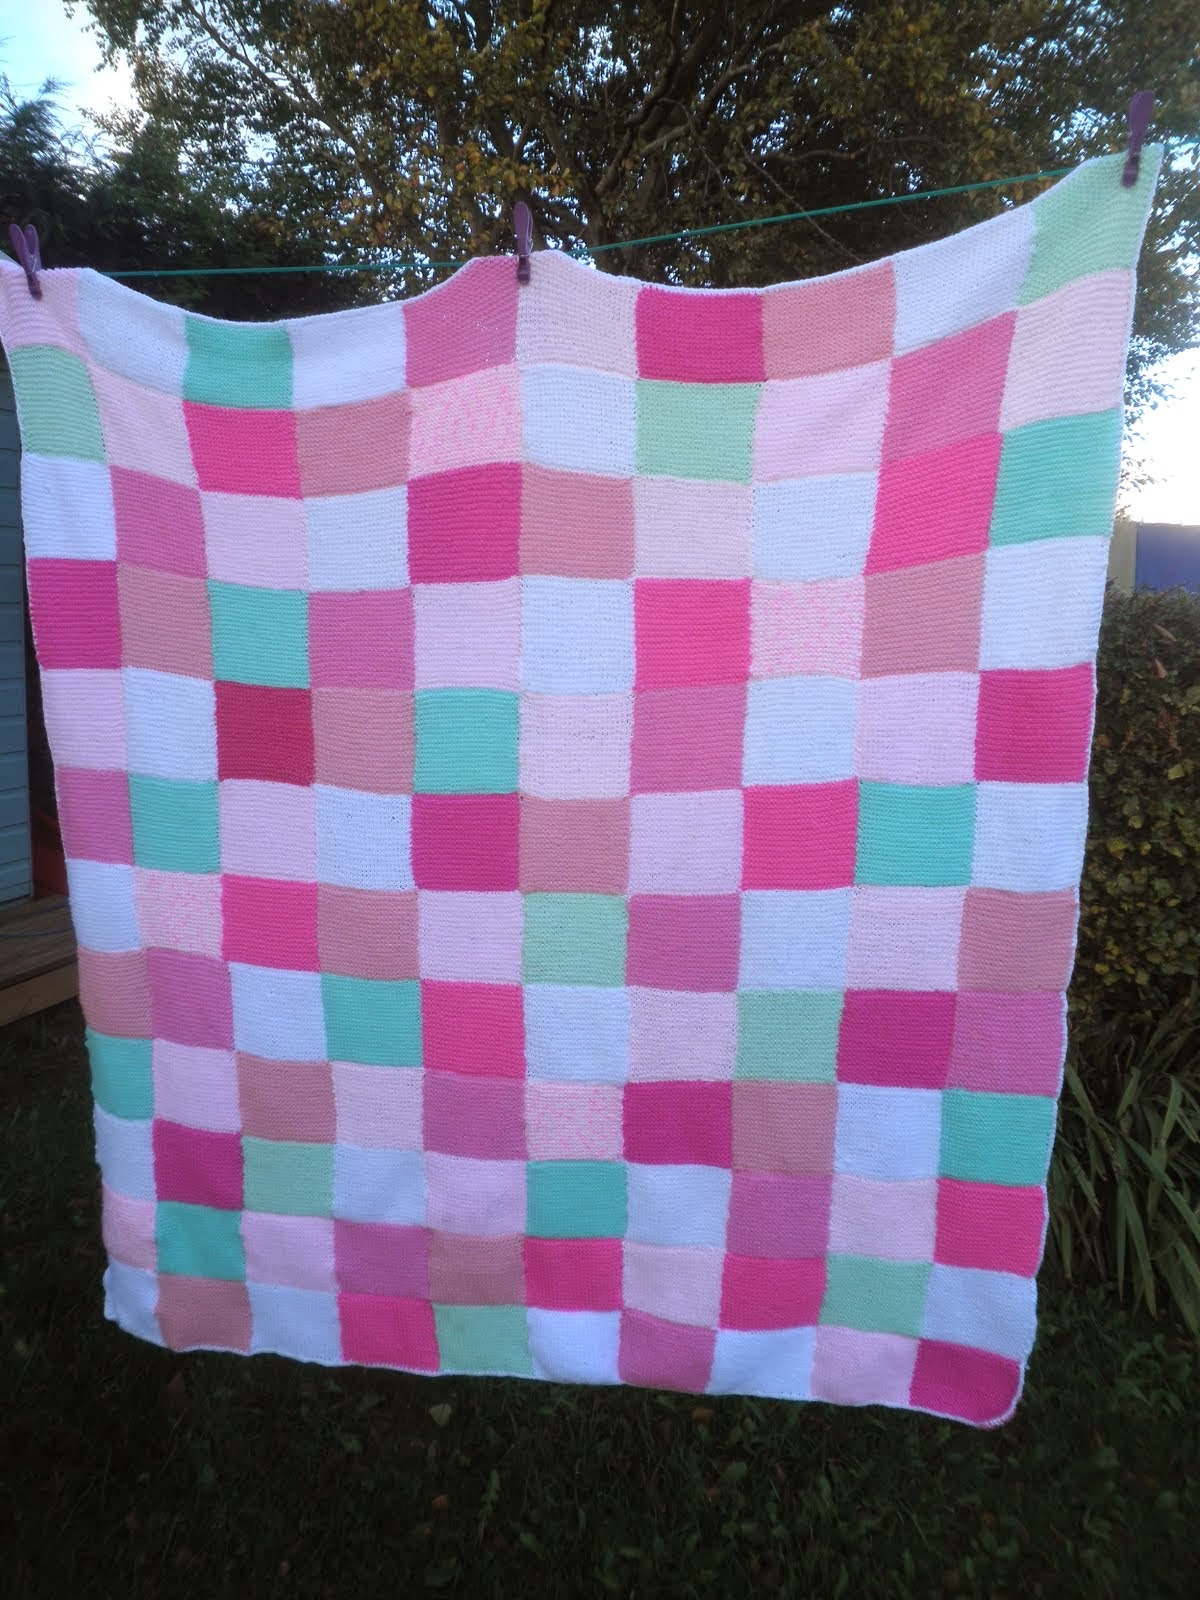 Knitted Patchwork Blanket for my Daughter